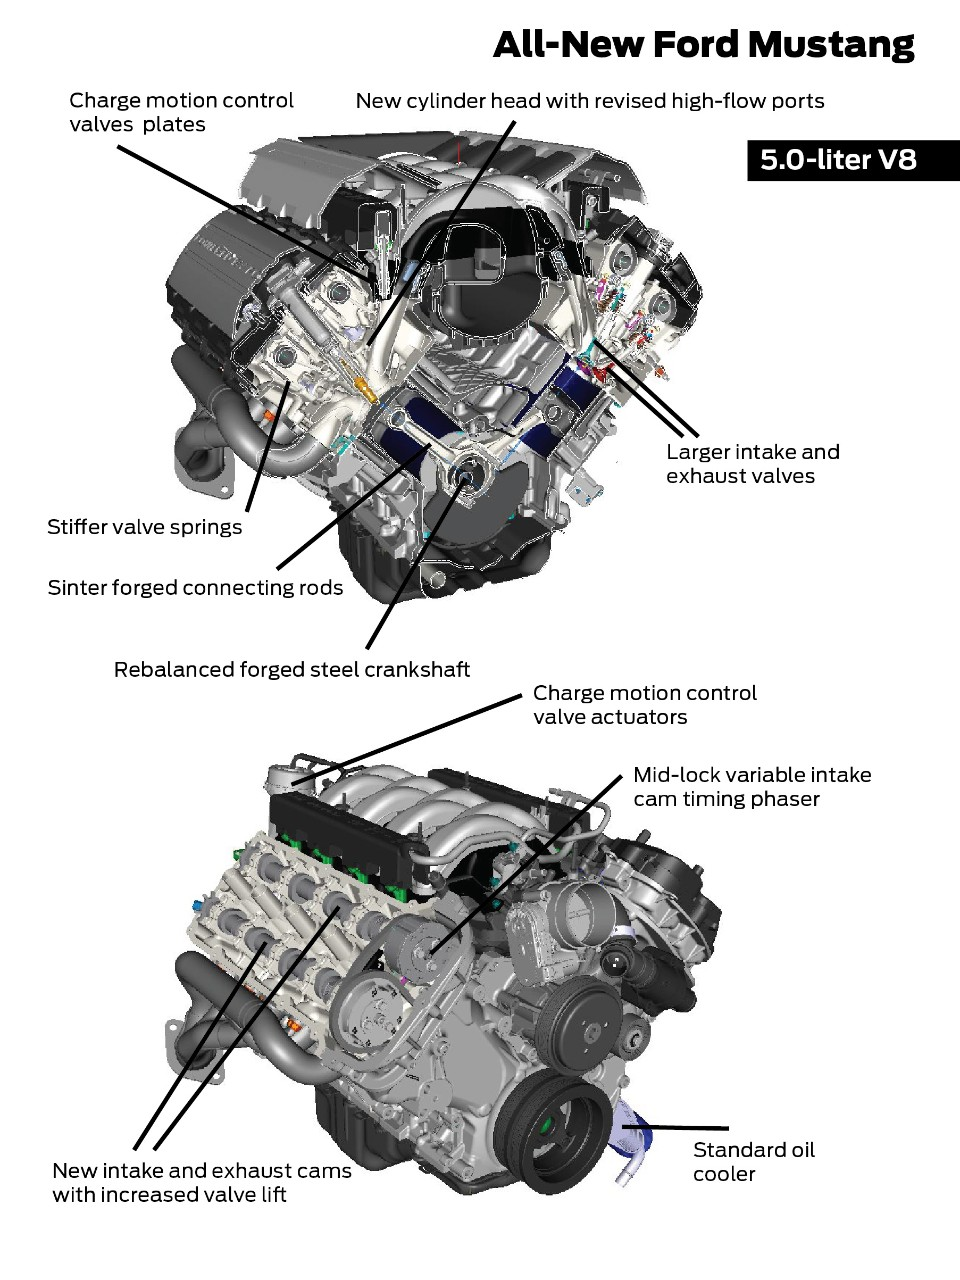 2015 Mustang Engine Diagram Good 1st Wiring 2005 Ford 17 Coyote Specs 5 0l Lmr Rh Com Front End V6